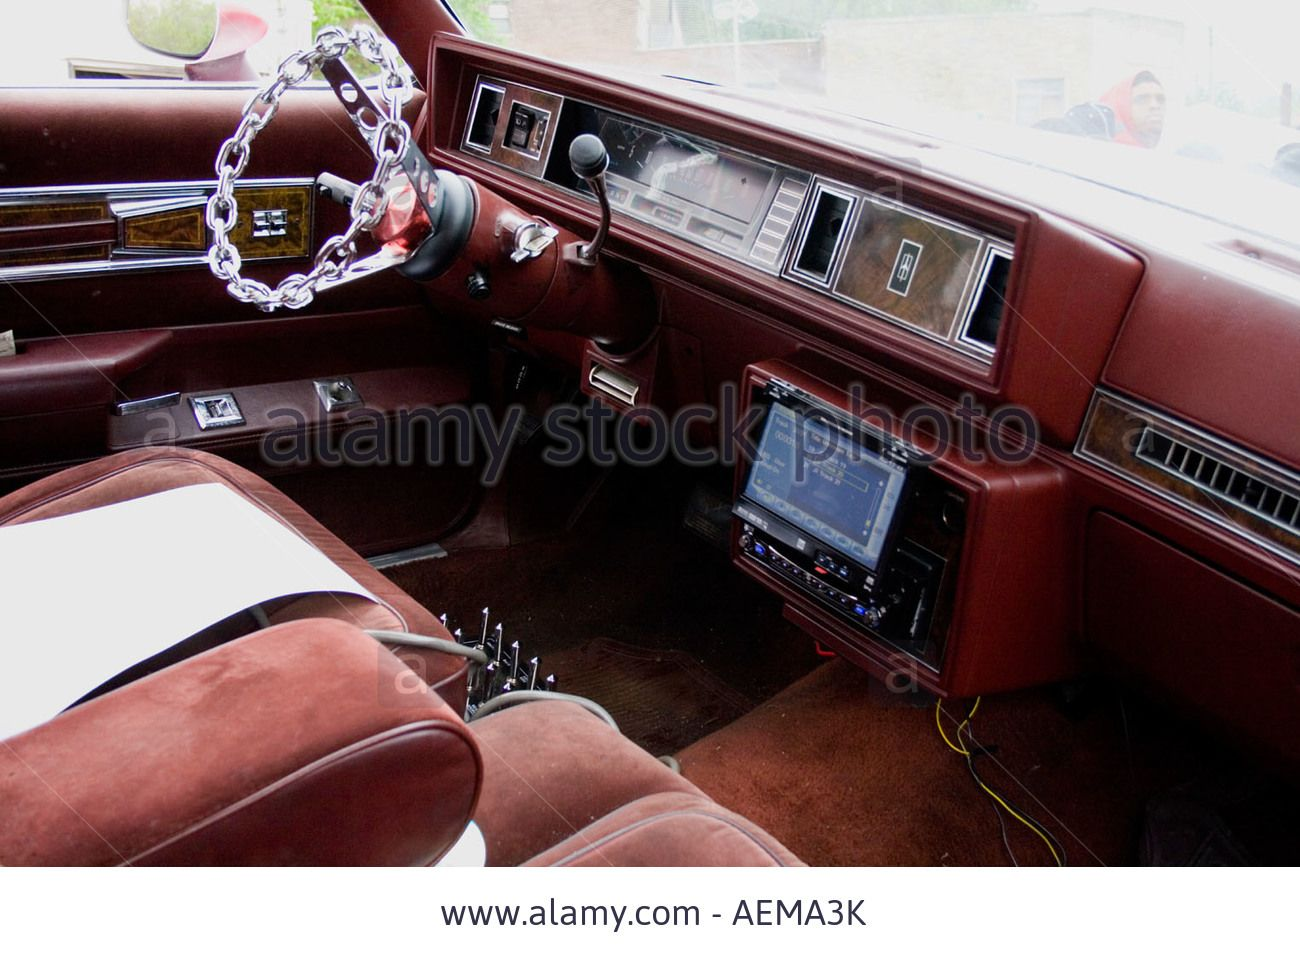 Interior Of Oldsmobile Cutlass Supreme At The Lowrider Car Show Display